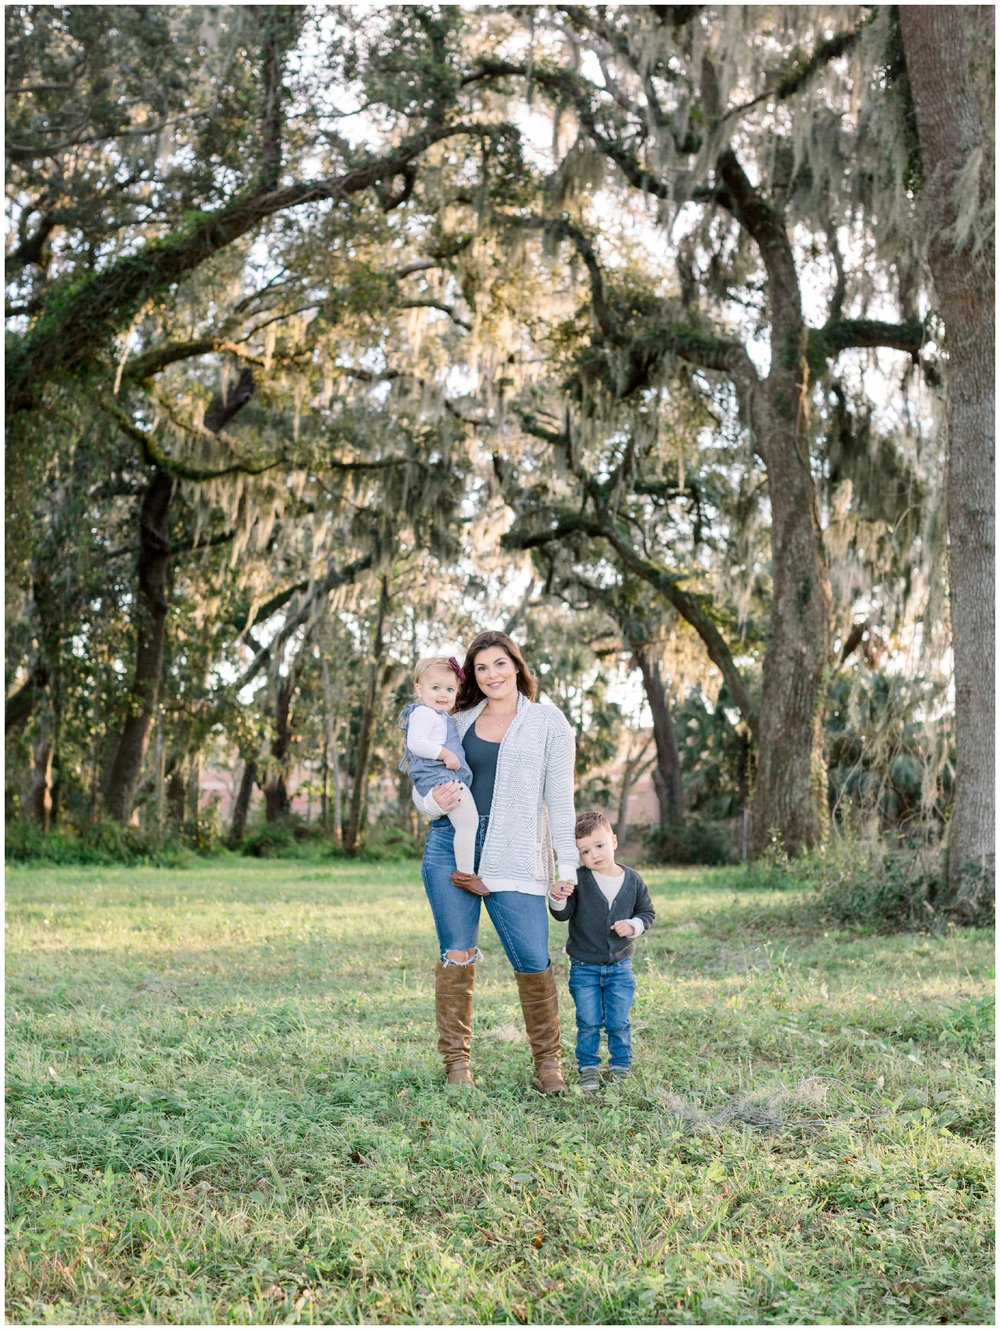 Lisa Silva Photography- Ponte Vedra Beach, St. Augustine and Jacksonville, Florida Fine Art Film Destination Wedding Photography- Family Lifestyle Session in St. Augustine_0000.jpg